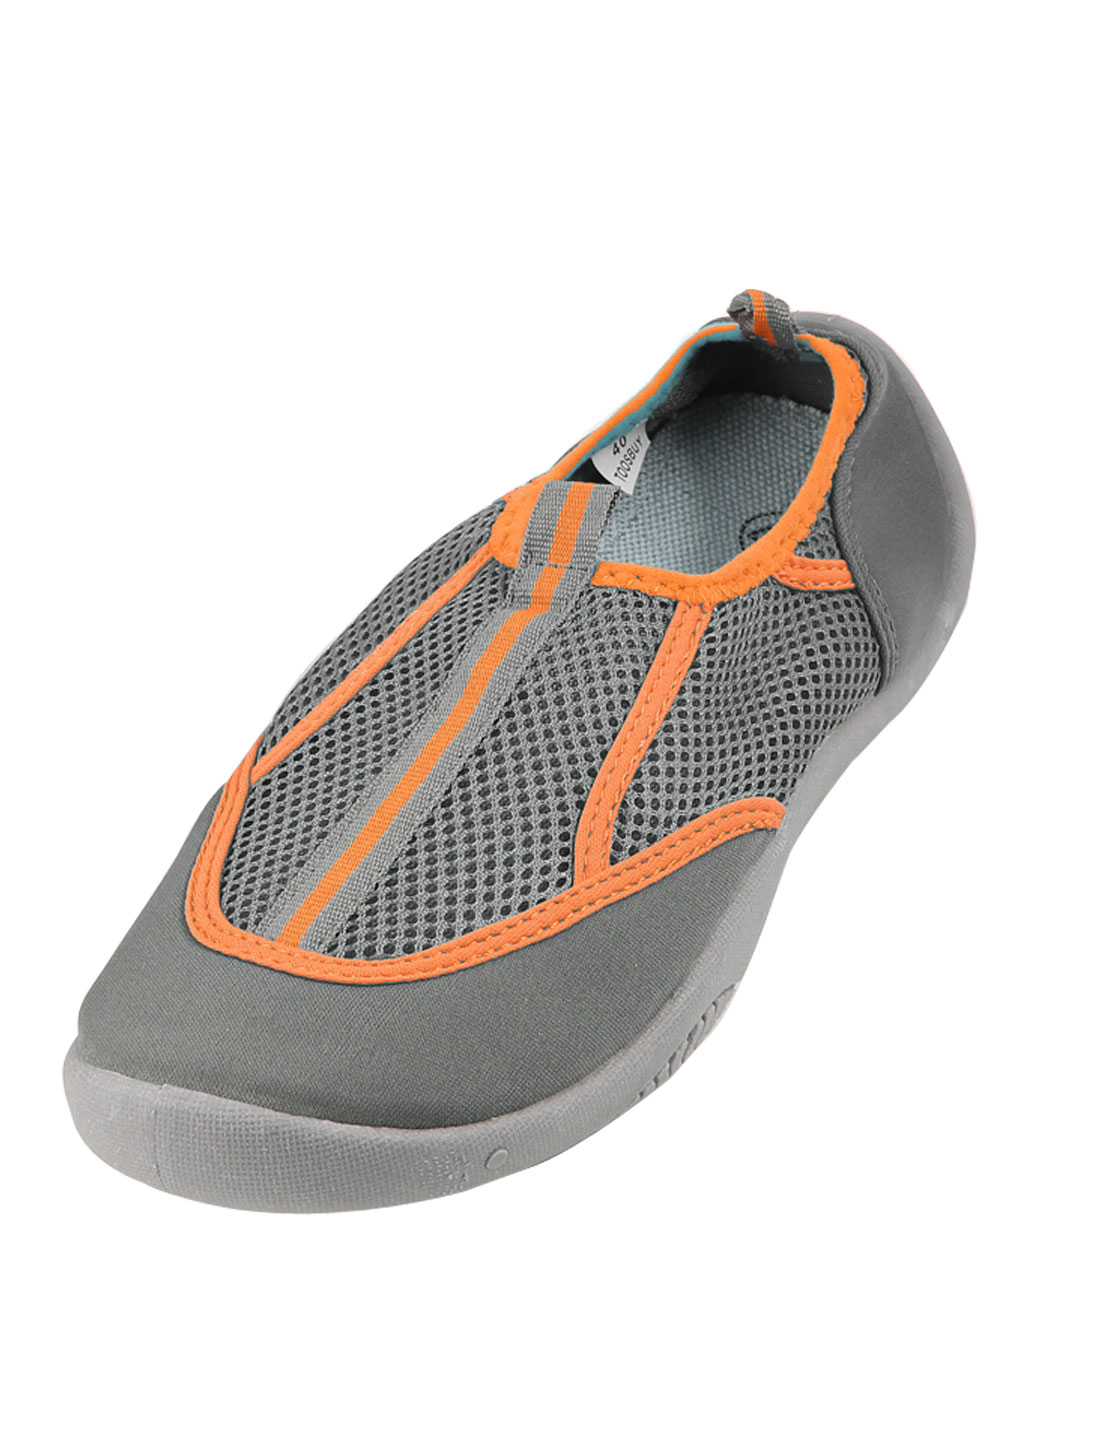 Gray Orange Round Toe Non-skid Sole Low Cut Beach Mesh Shoes US 9.5 for Women